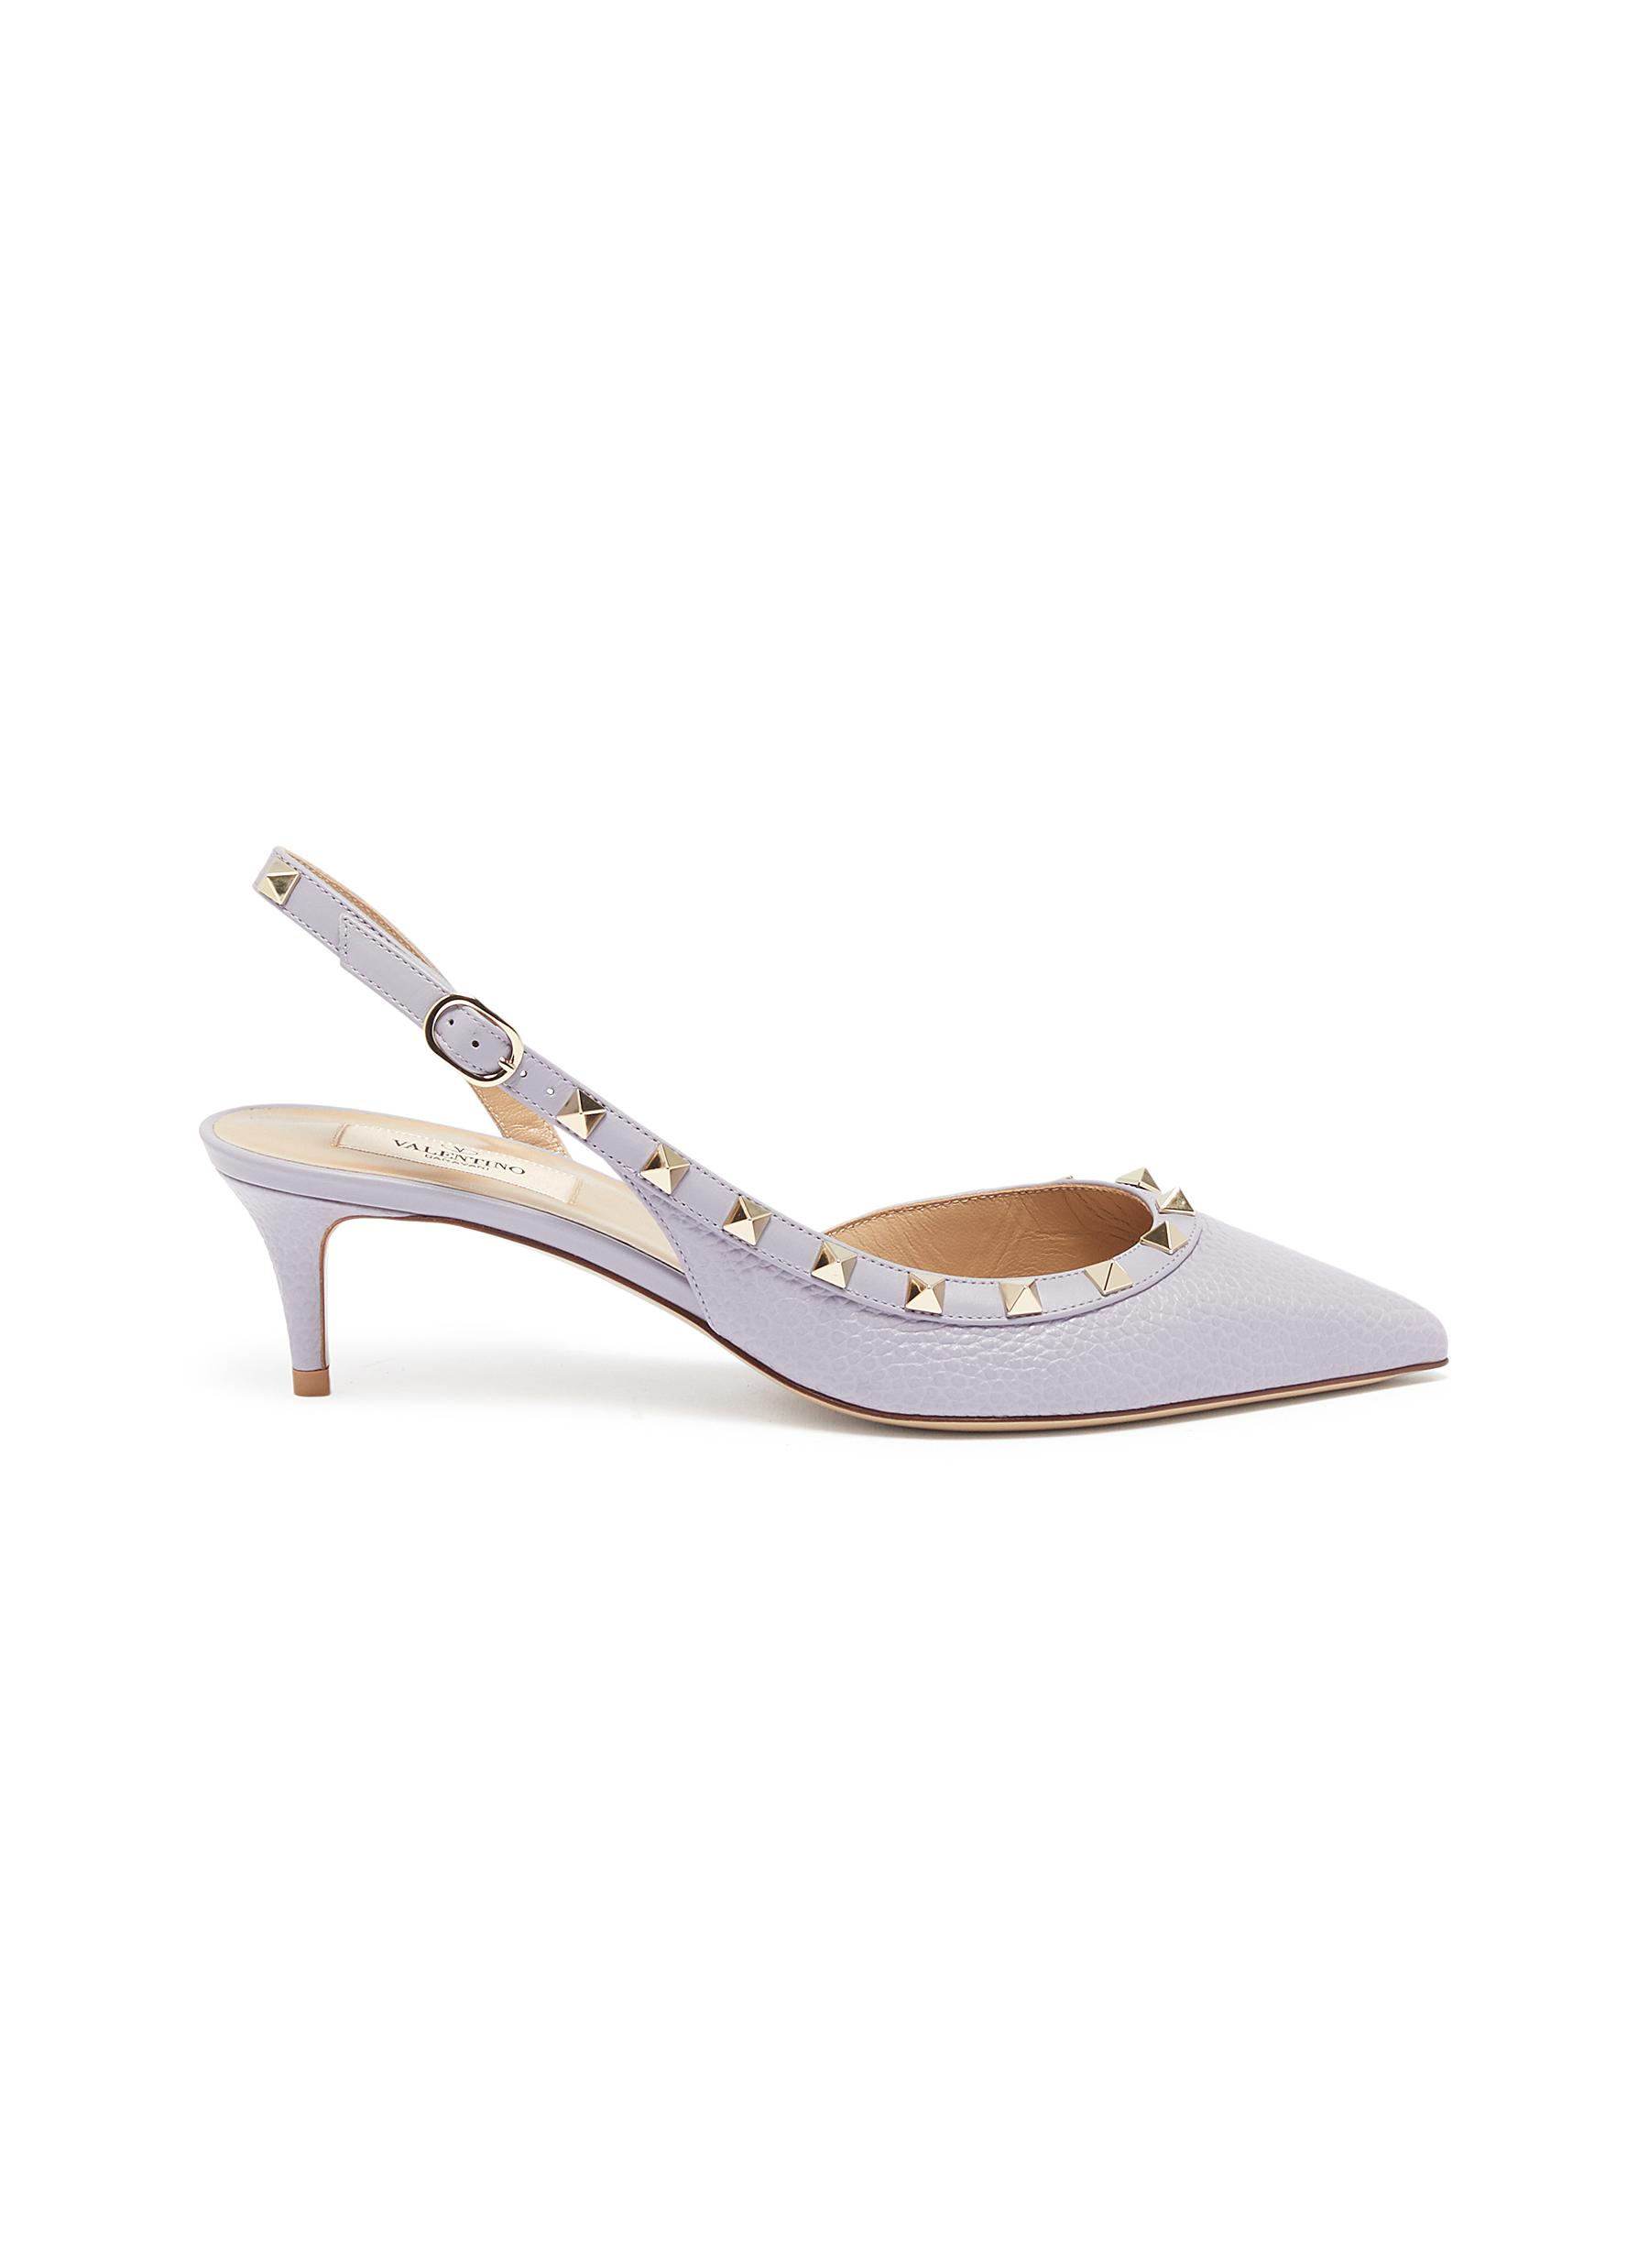 Rockstud grainy leather slingback pumps by Valentino